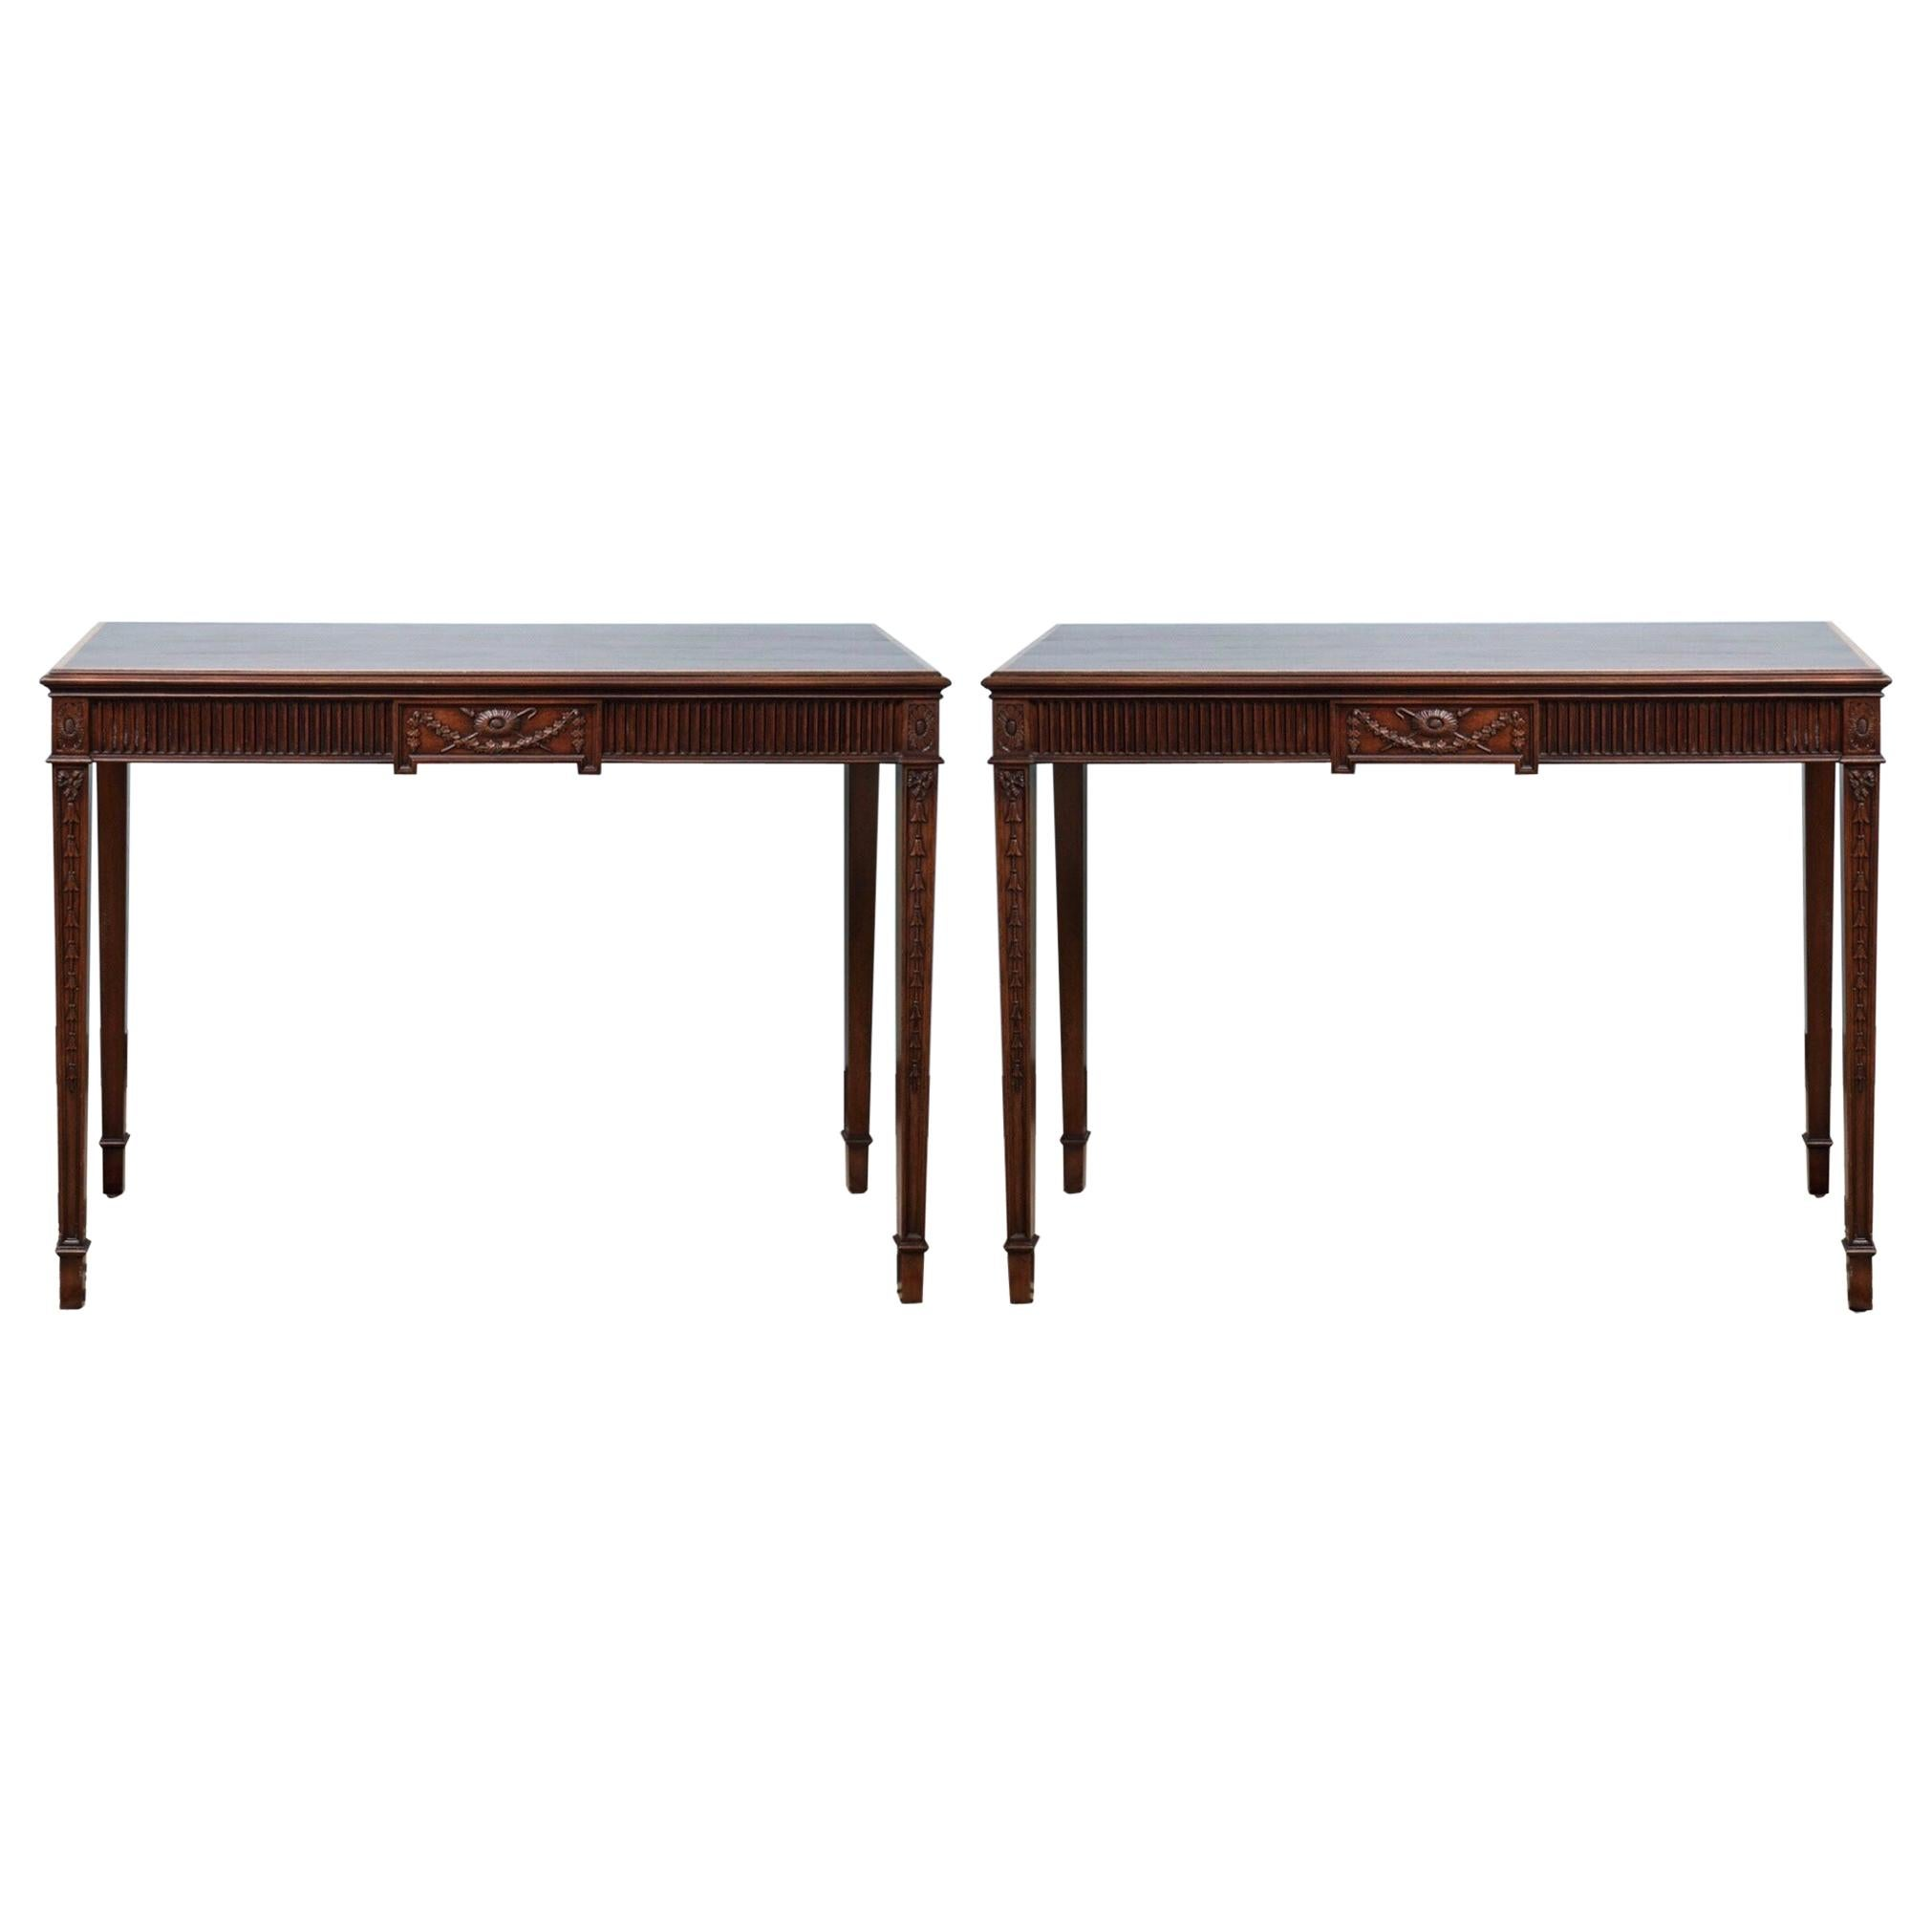 1950s Federal Style Inlaid Mahogany Console Tables by Kittinger, Pair